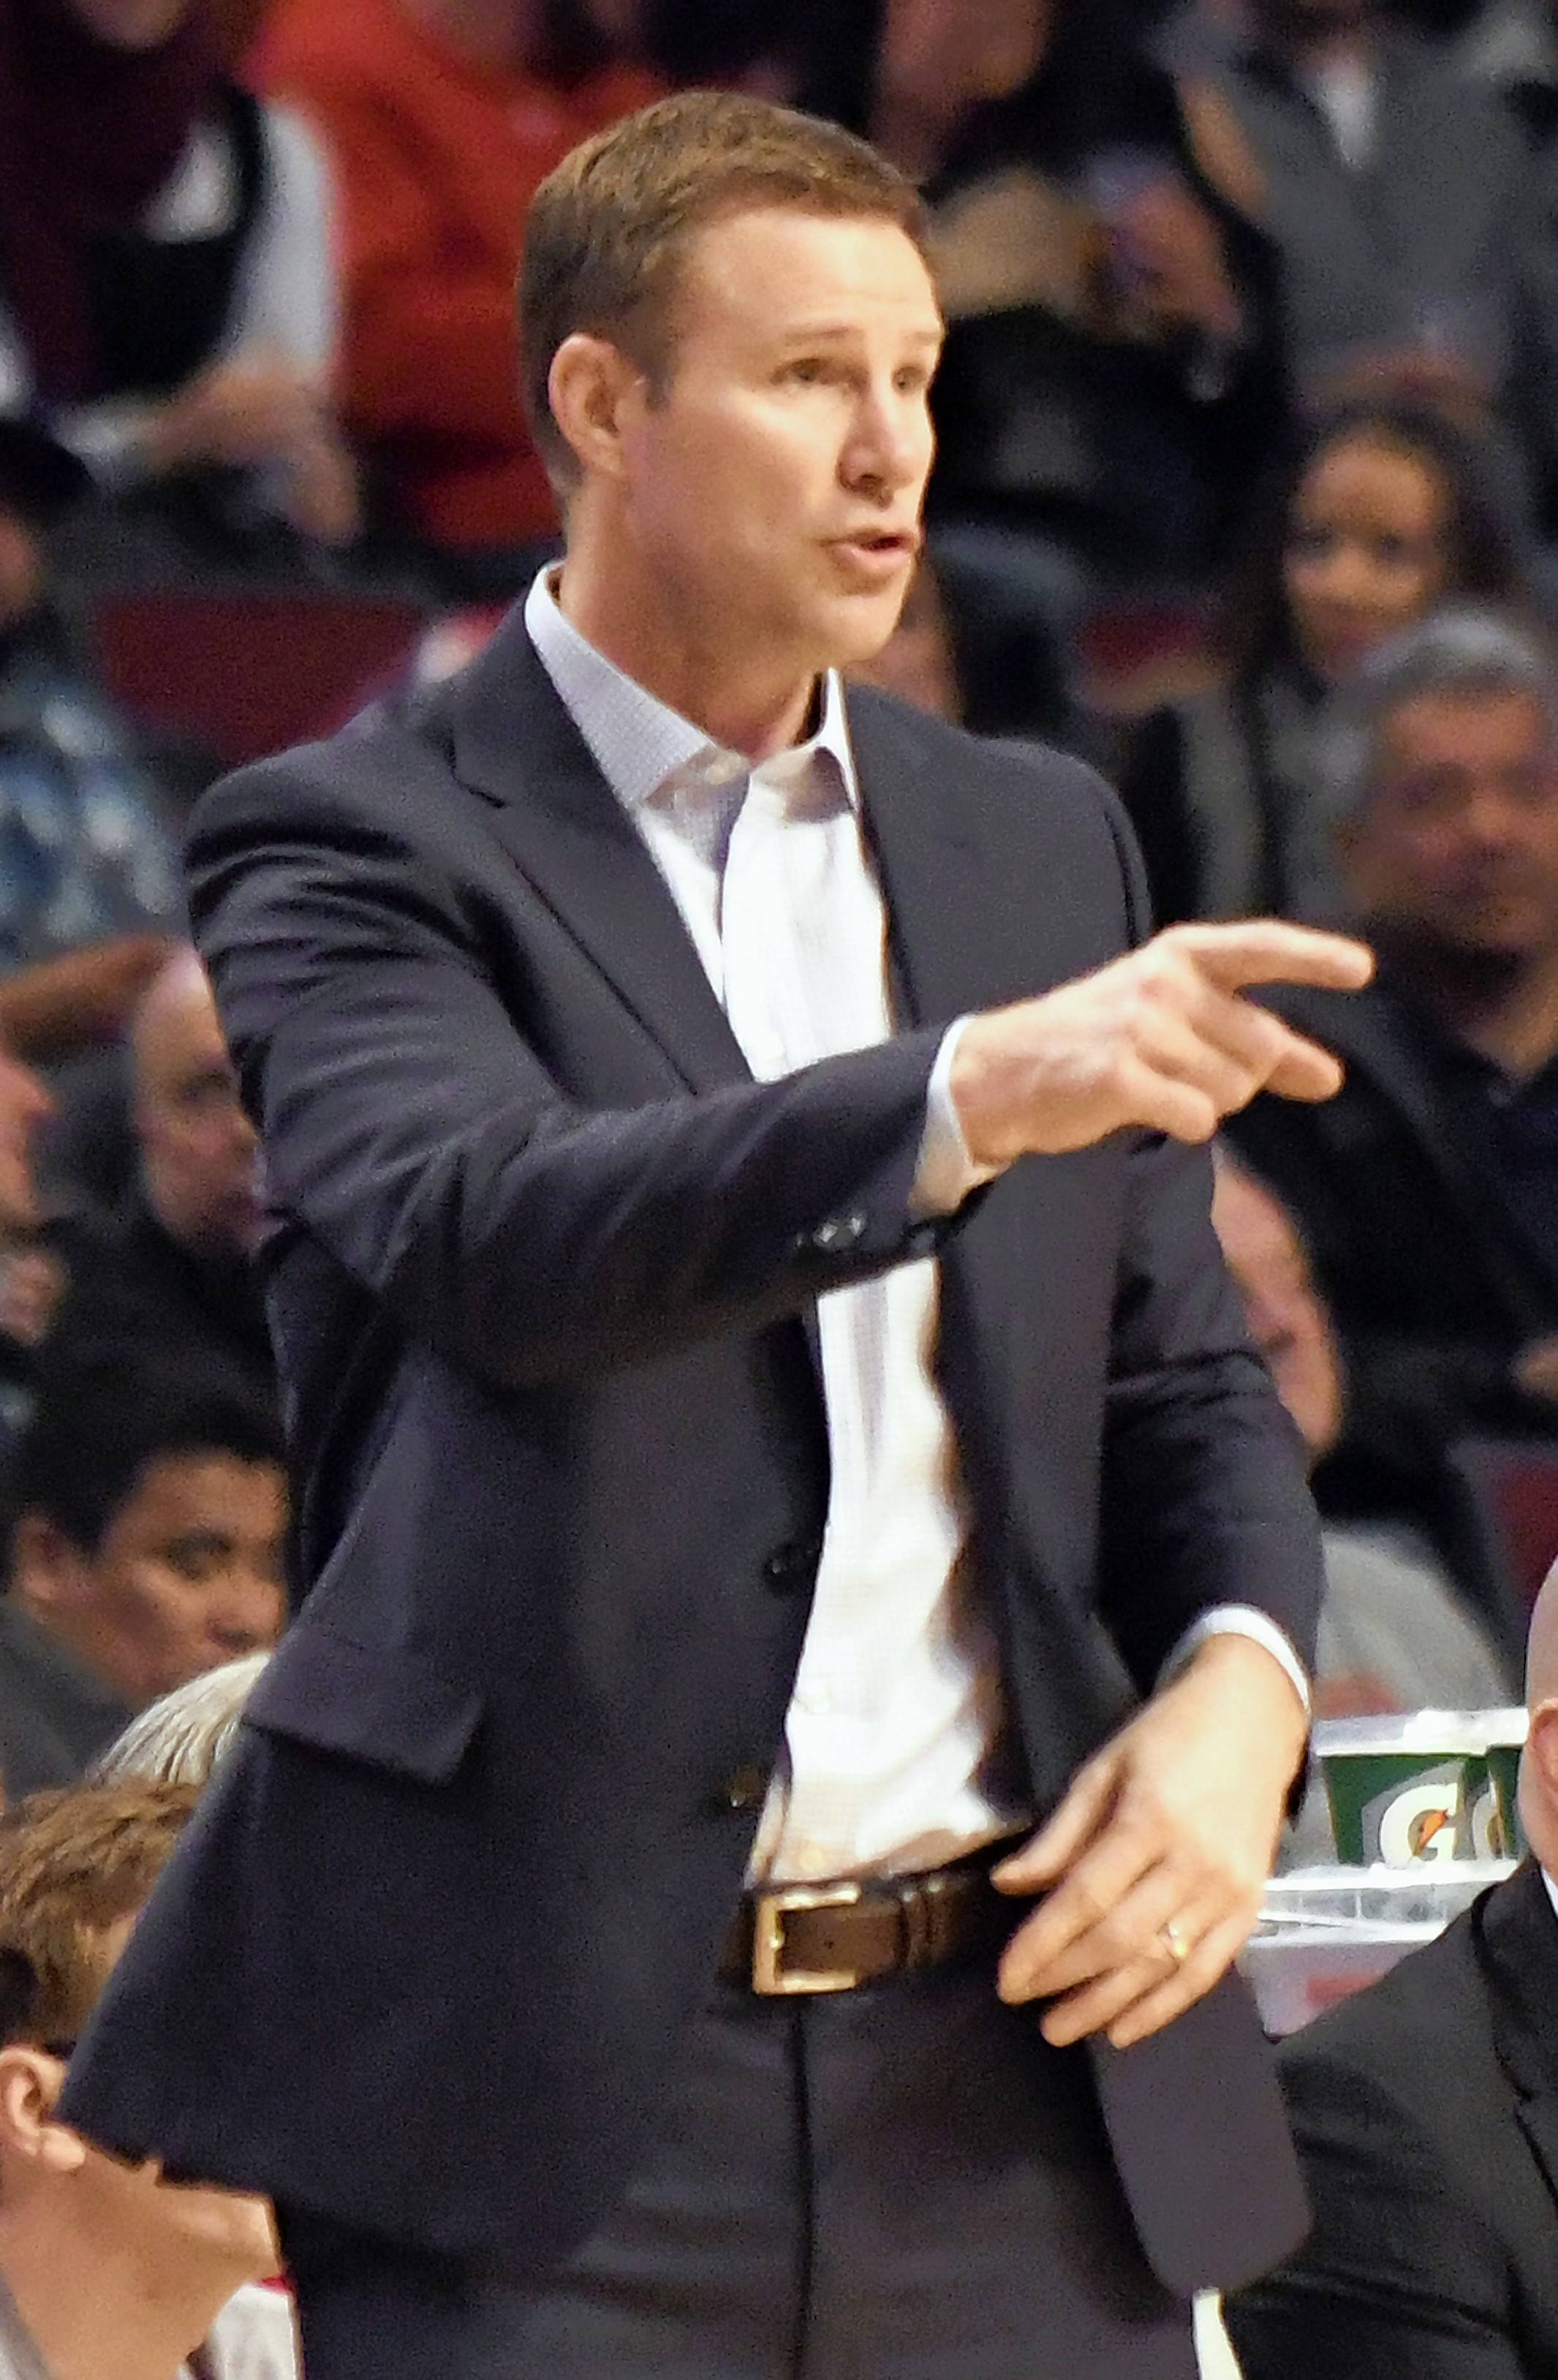 Chicago Bulls head coach Fred Hoiberg gives instructions to his his team during the second half of an NBA basketball game against the Philadelphia 76ers in Chicago, Friday, March 24, 2017. The 76ers won 117-107. (AP Photo/David Banks)